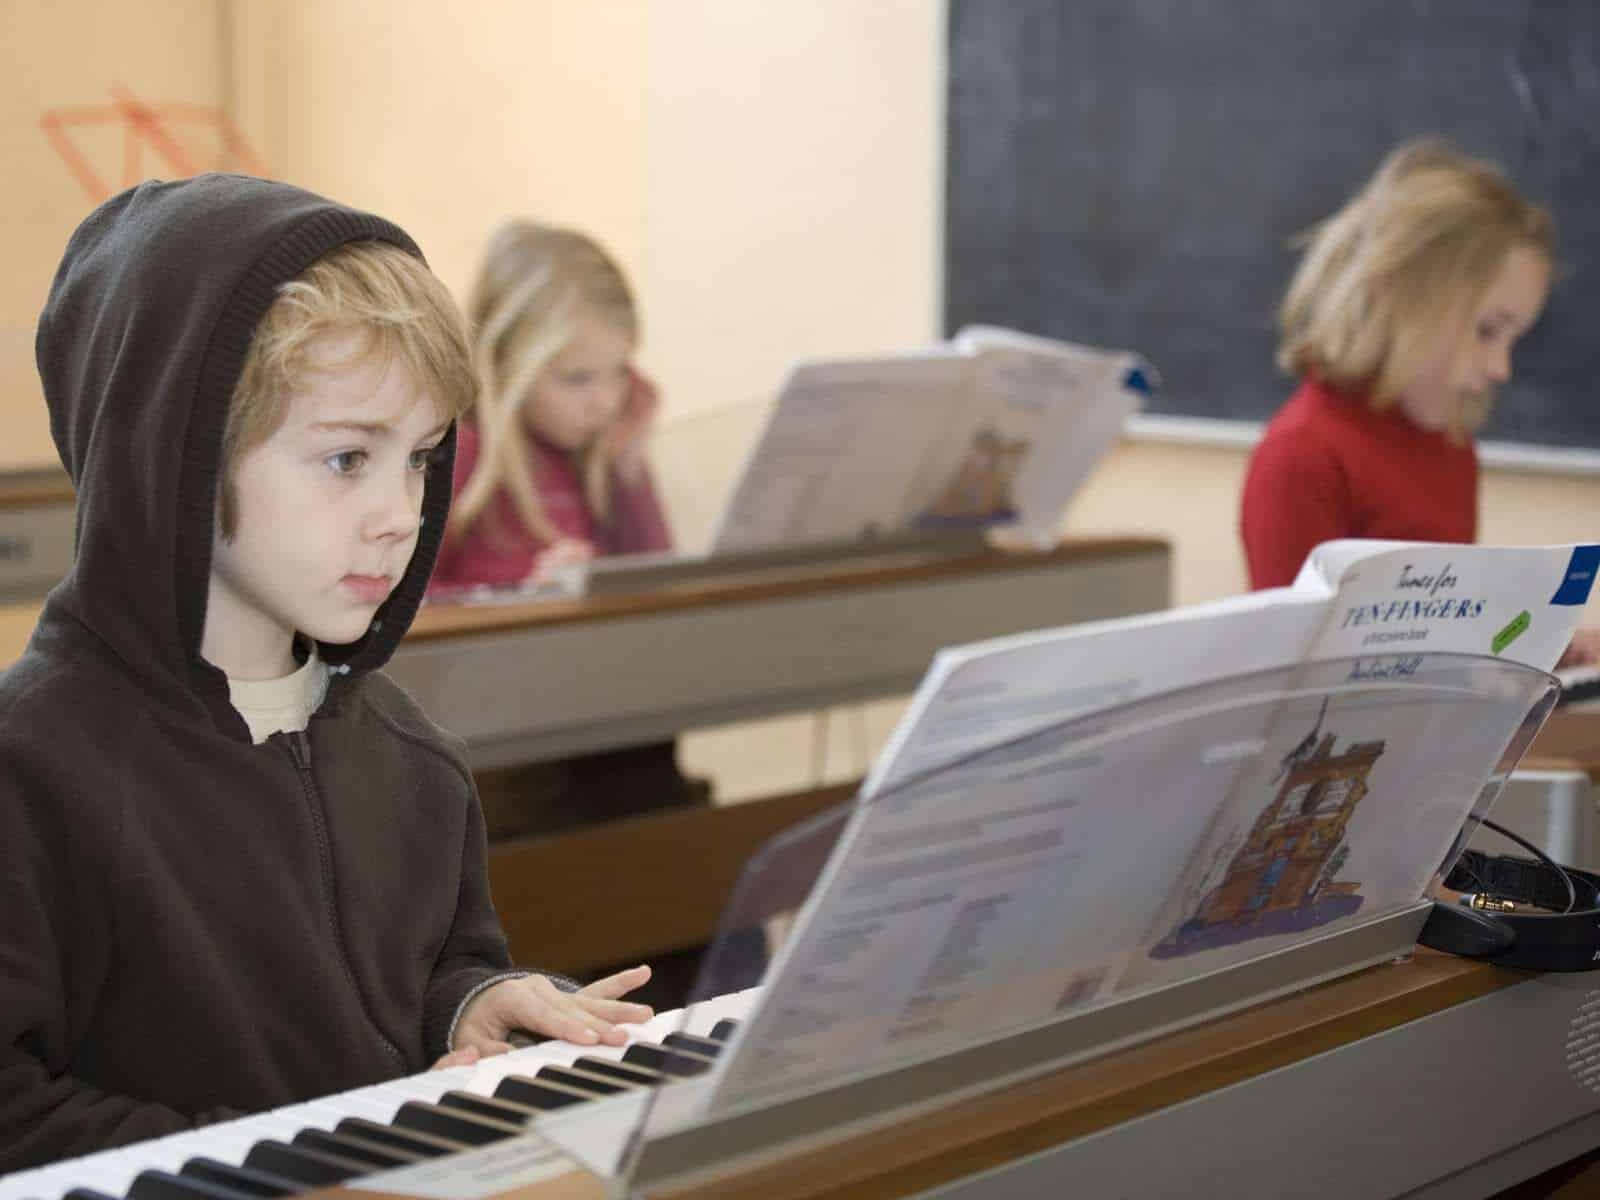 Introducing Piano/Keyboard for Children